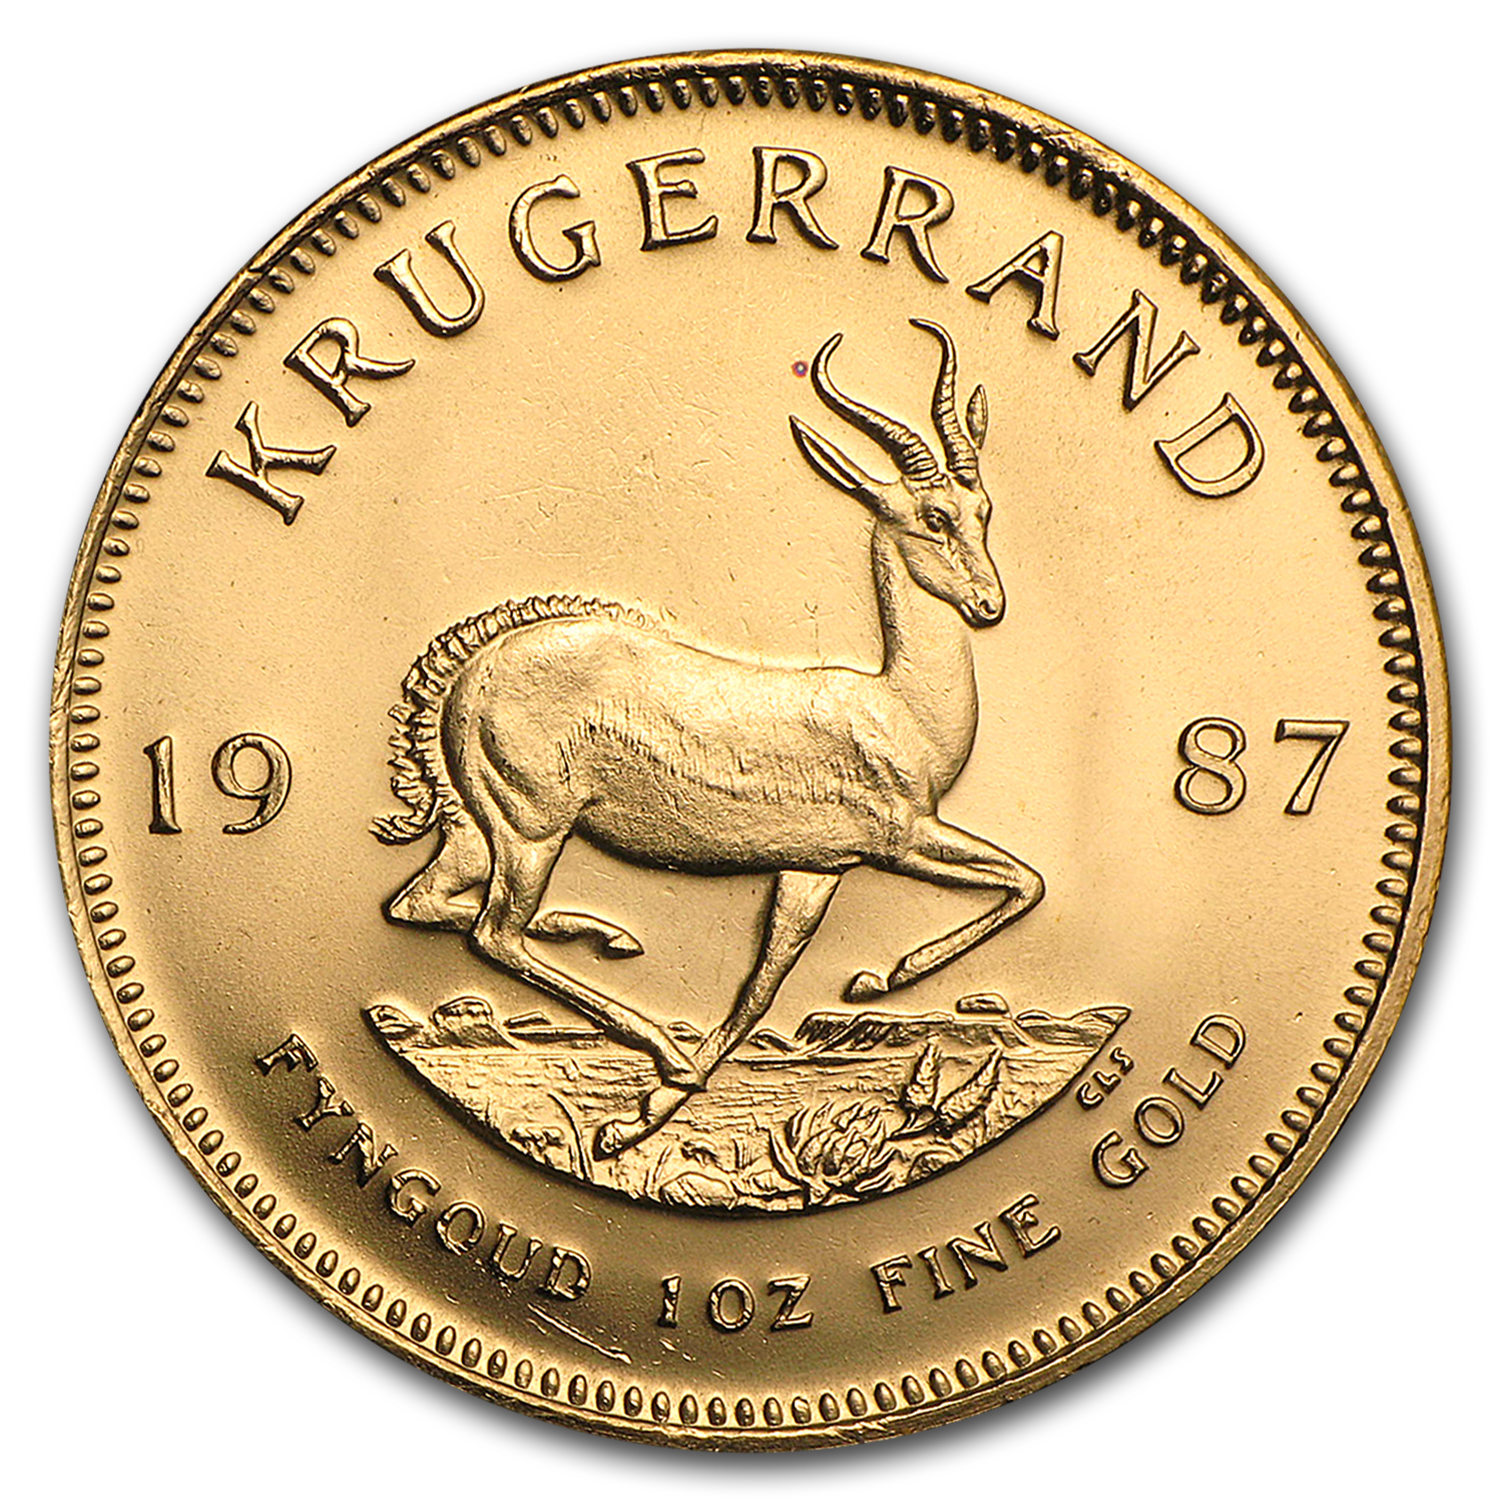 1987 1 oz Gold South African Krugerrand